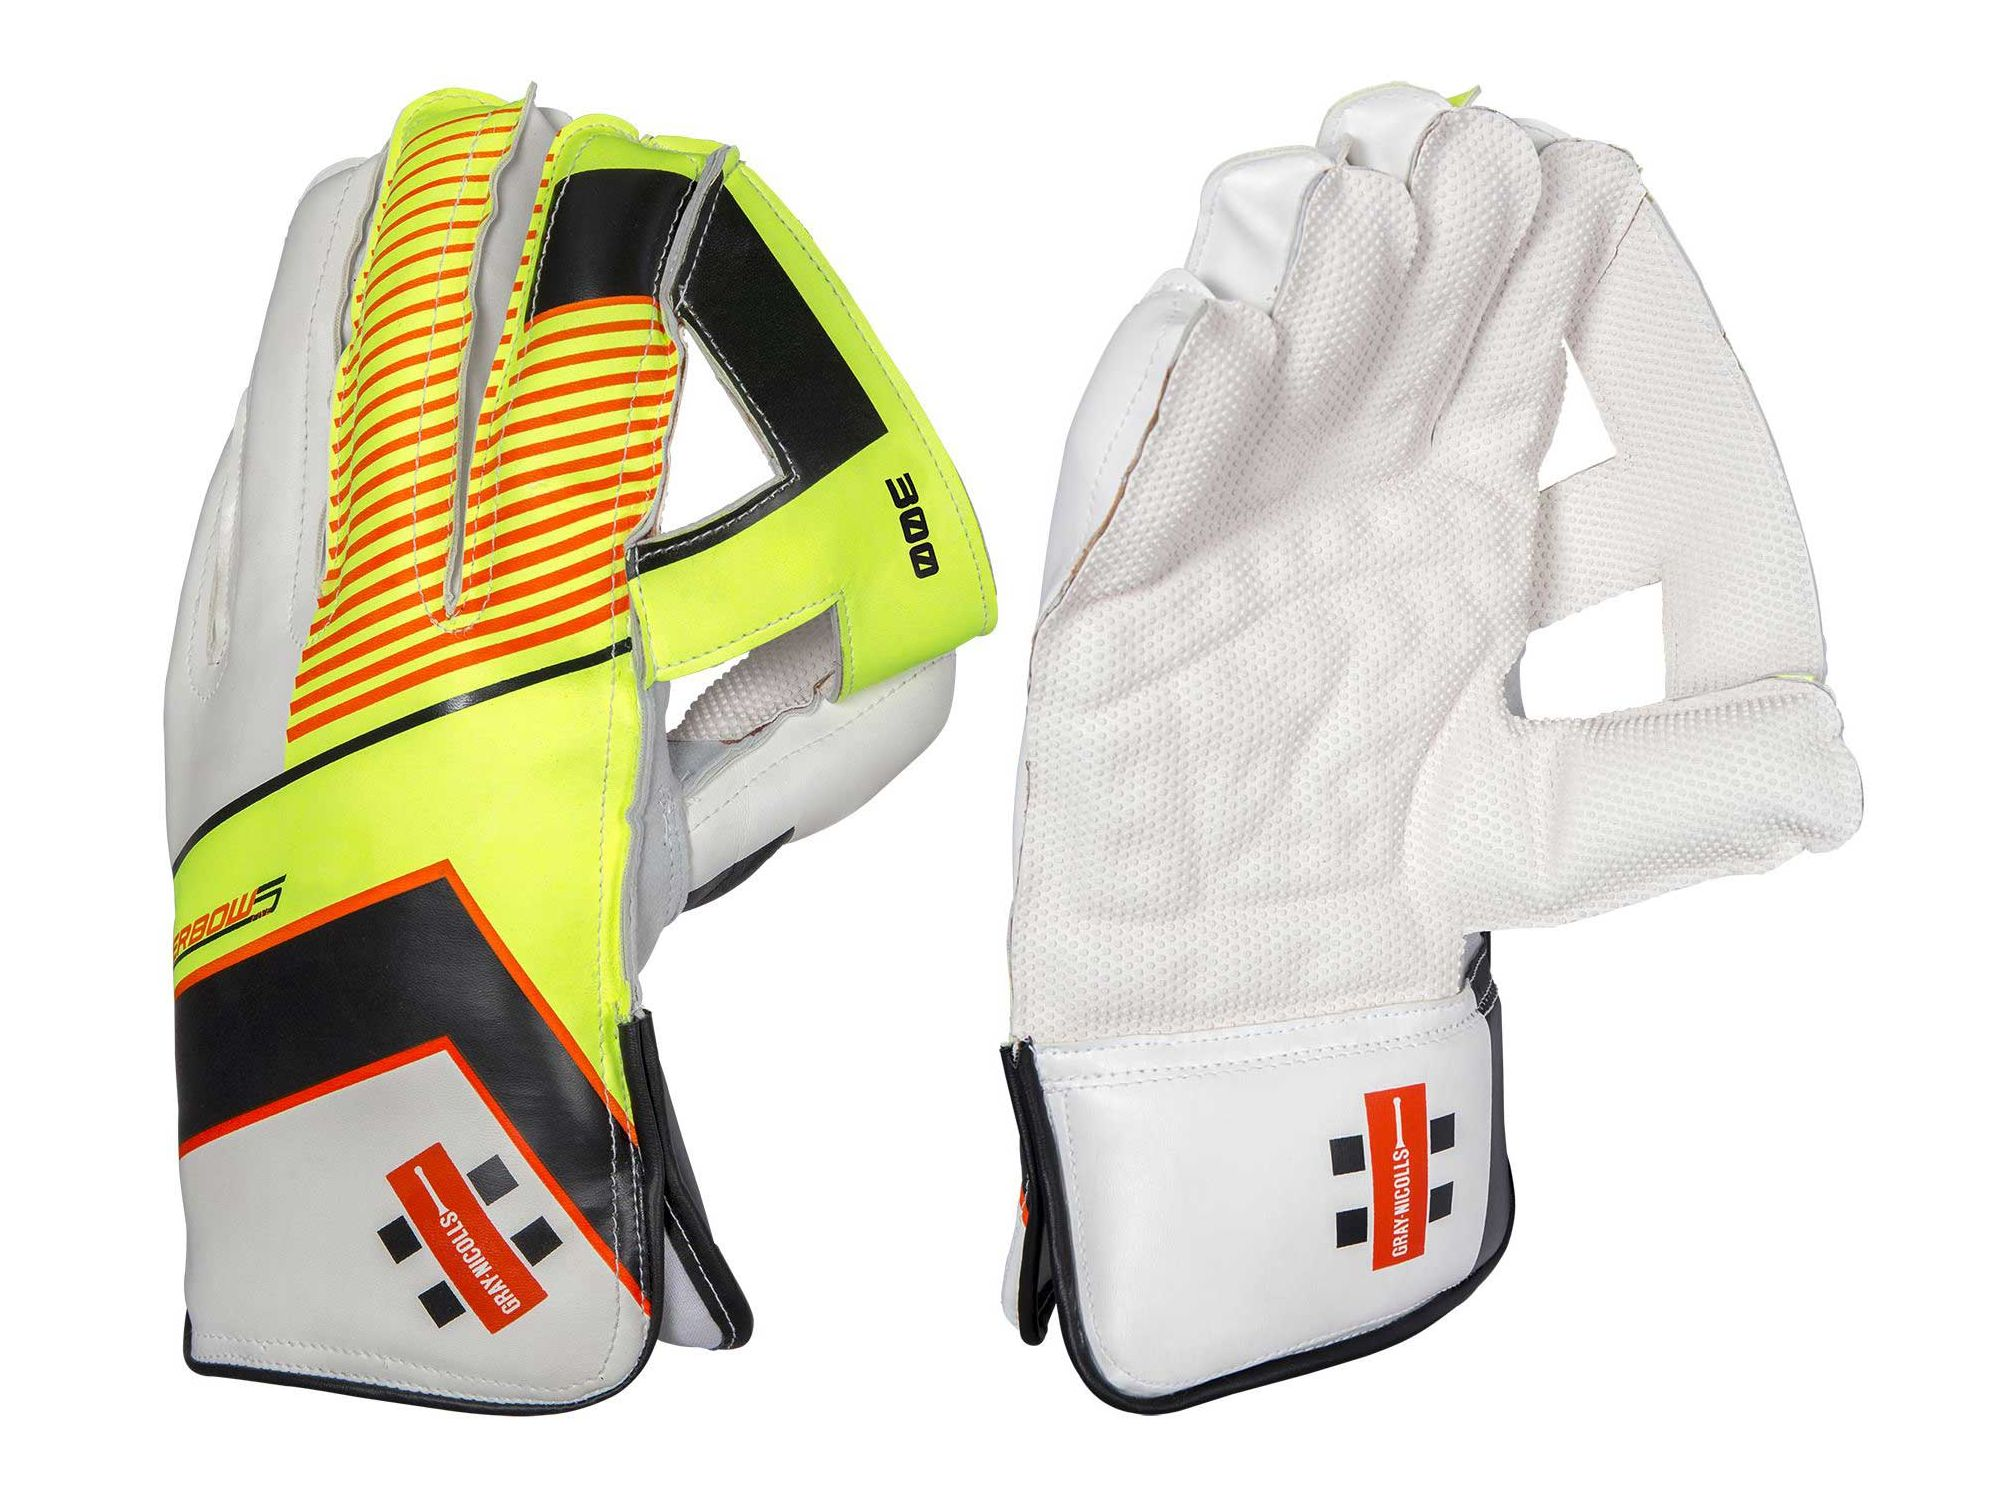 Gray Nicolls Powerbow 5 300 WK Gloves